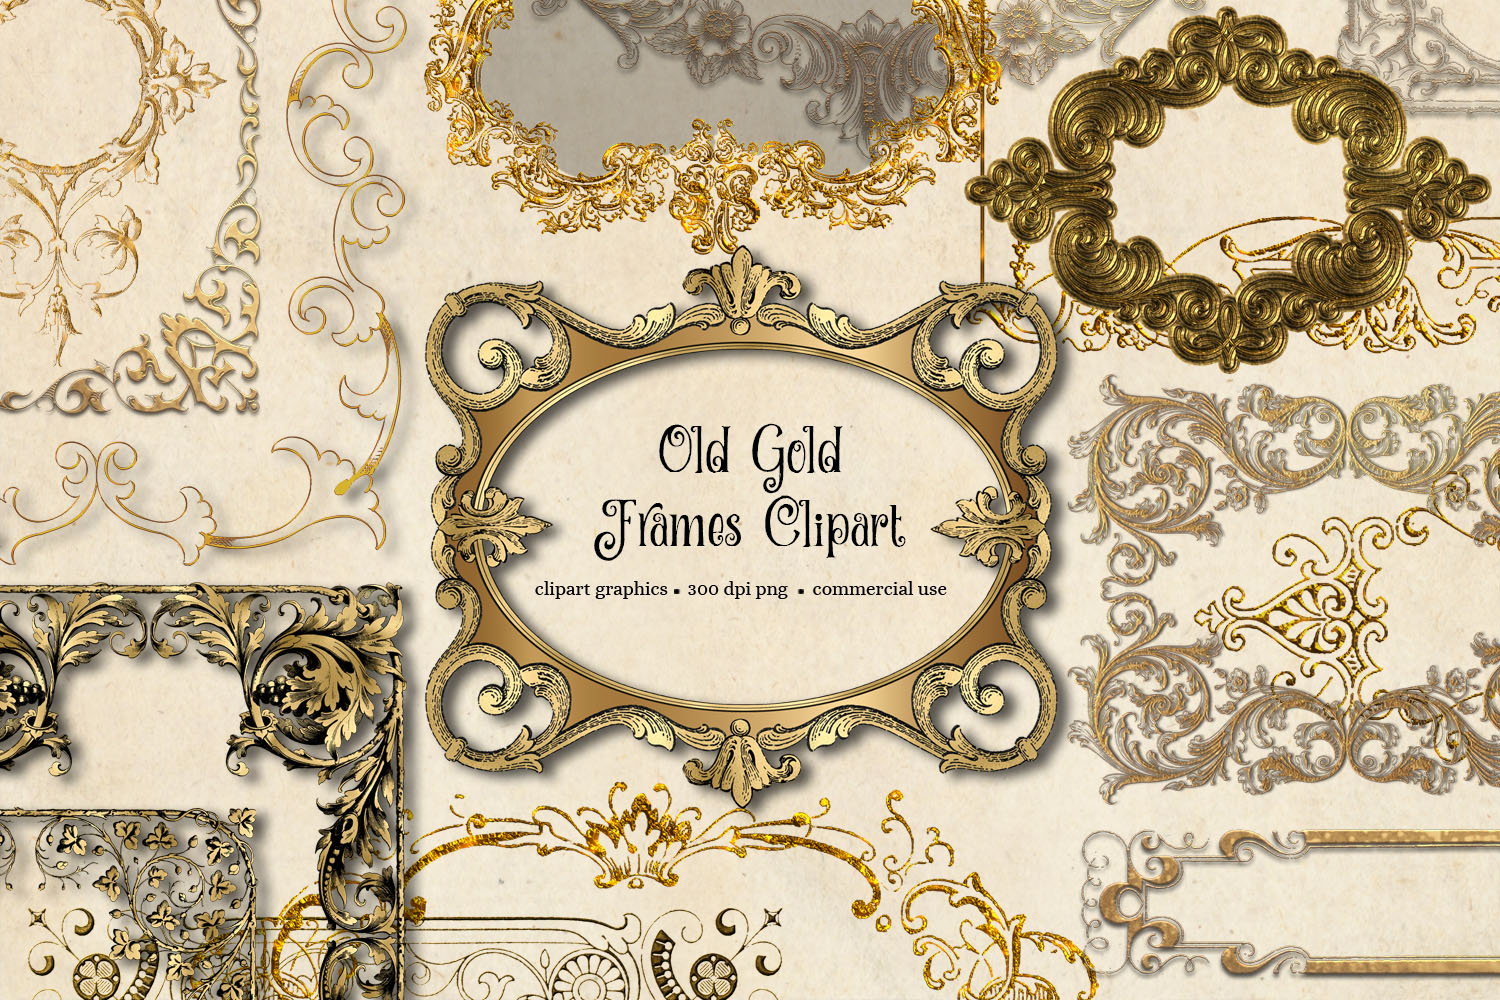 Old Gold Frames Clipart example image 2